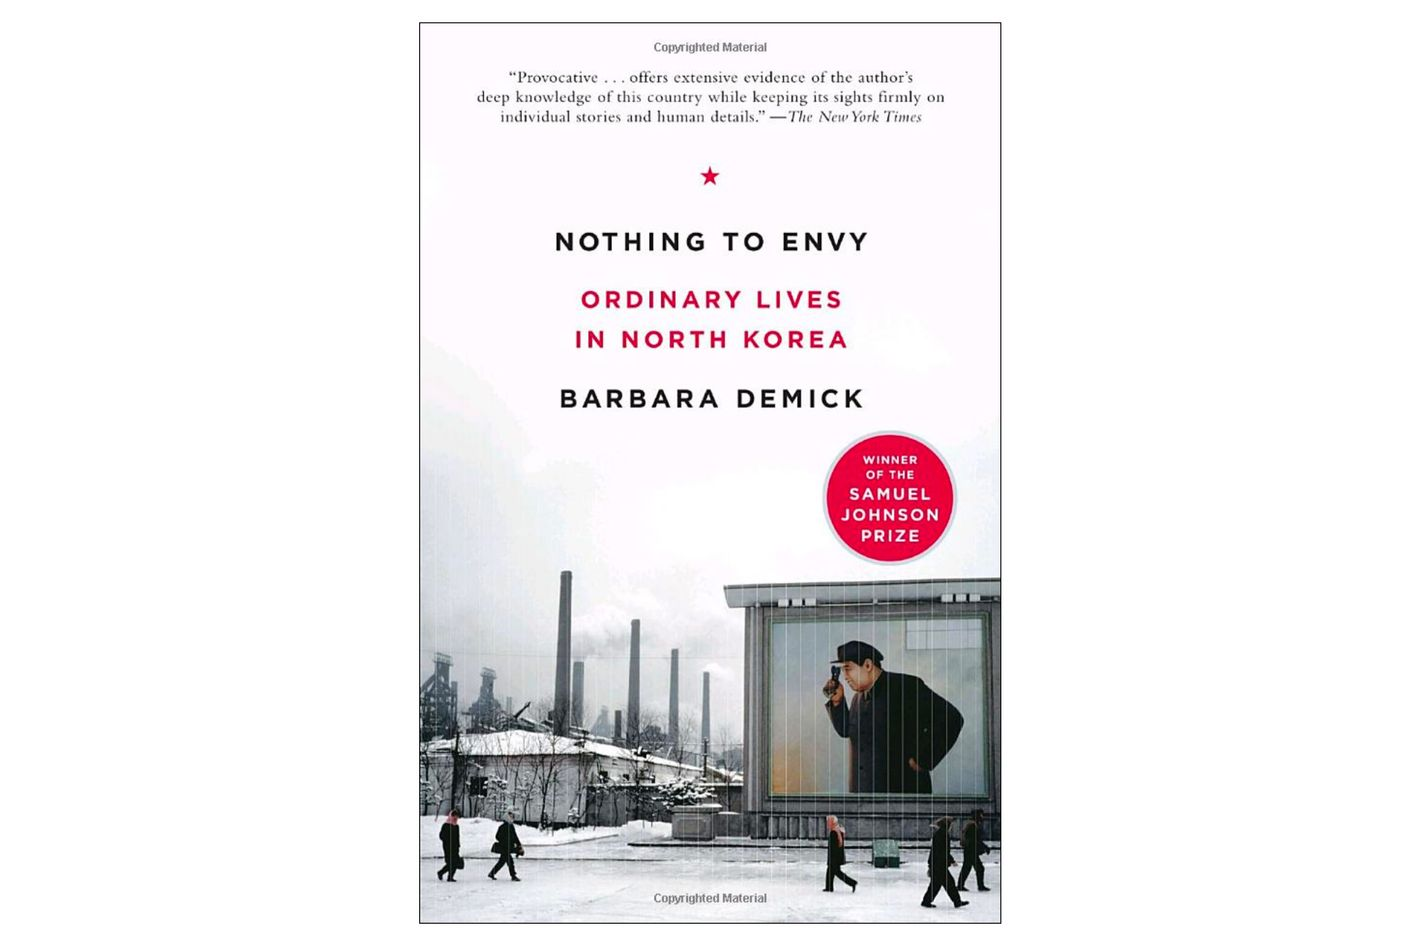 Nothing to Envy: Ordinary Lives in North Korea by Barbara Demick